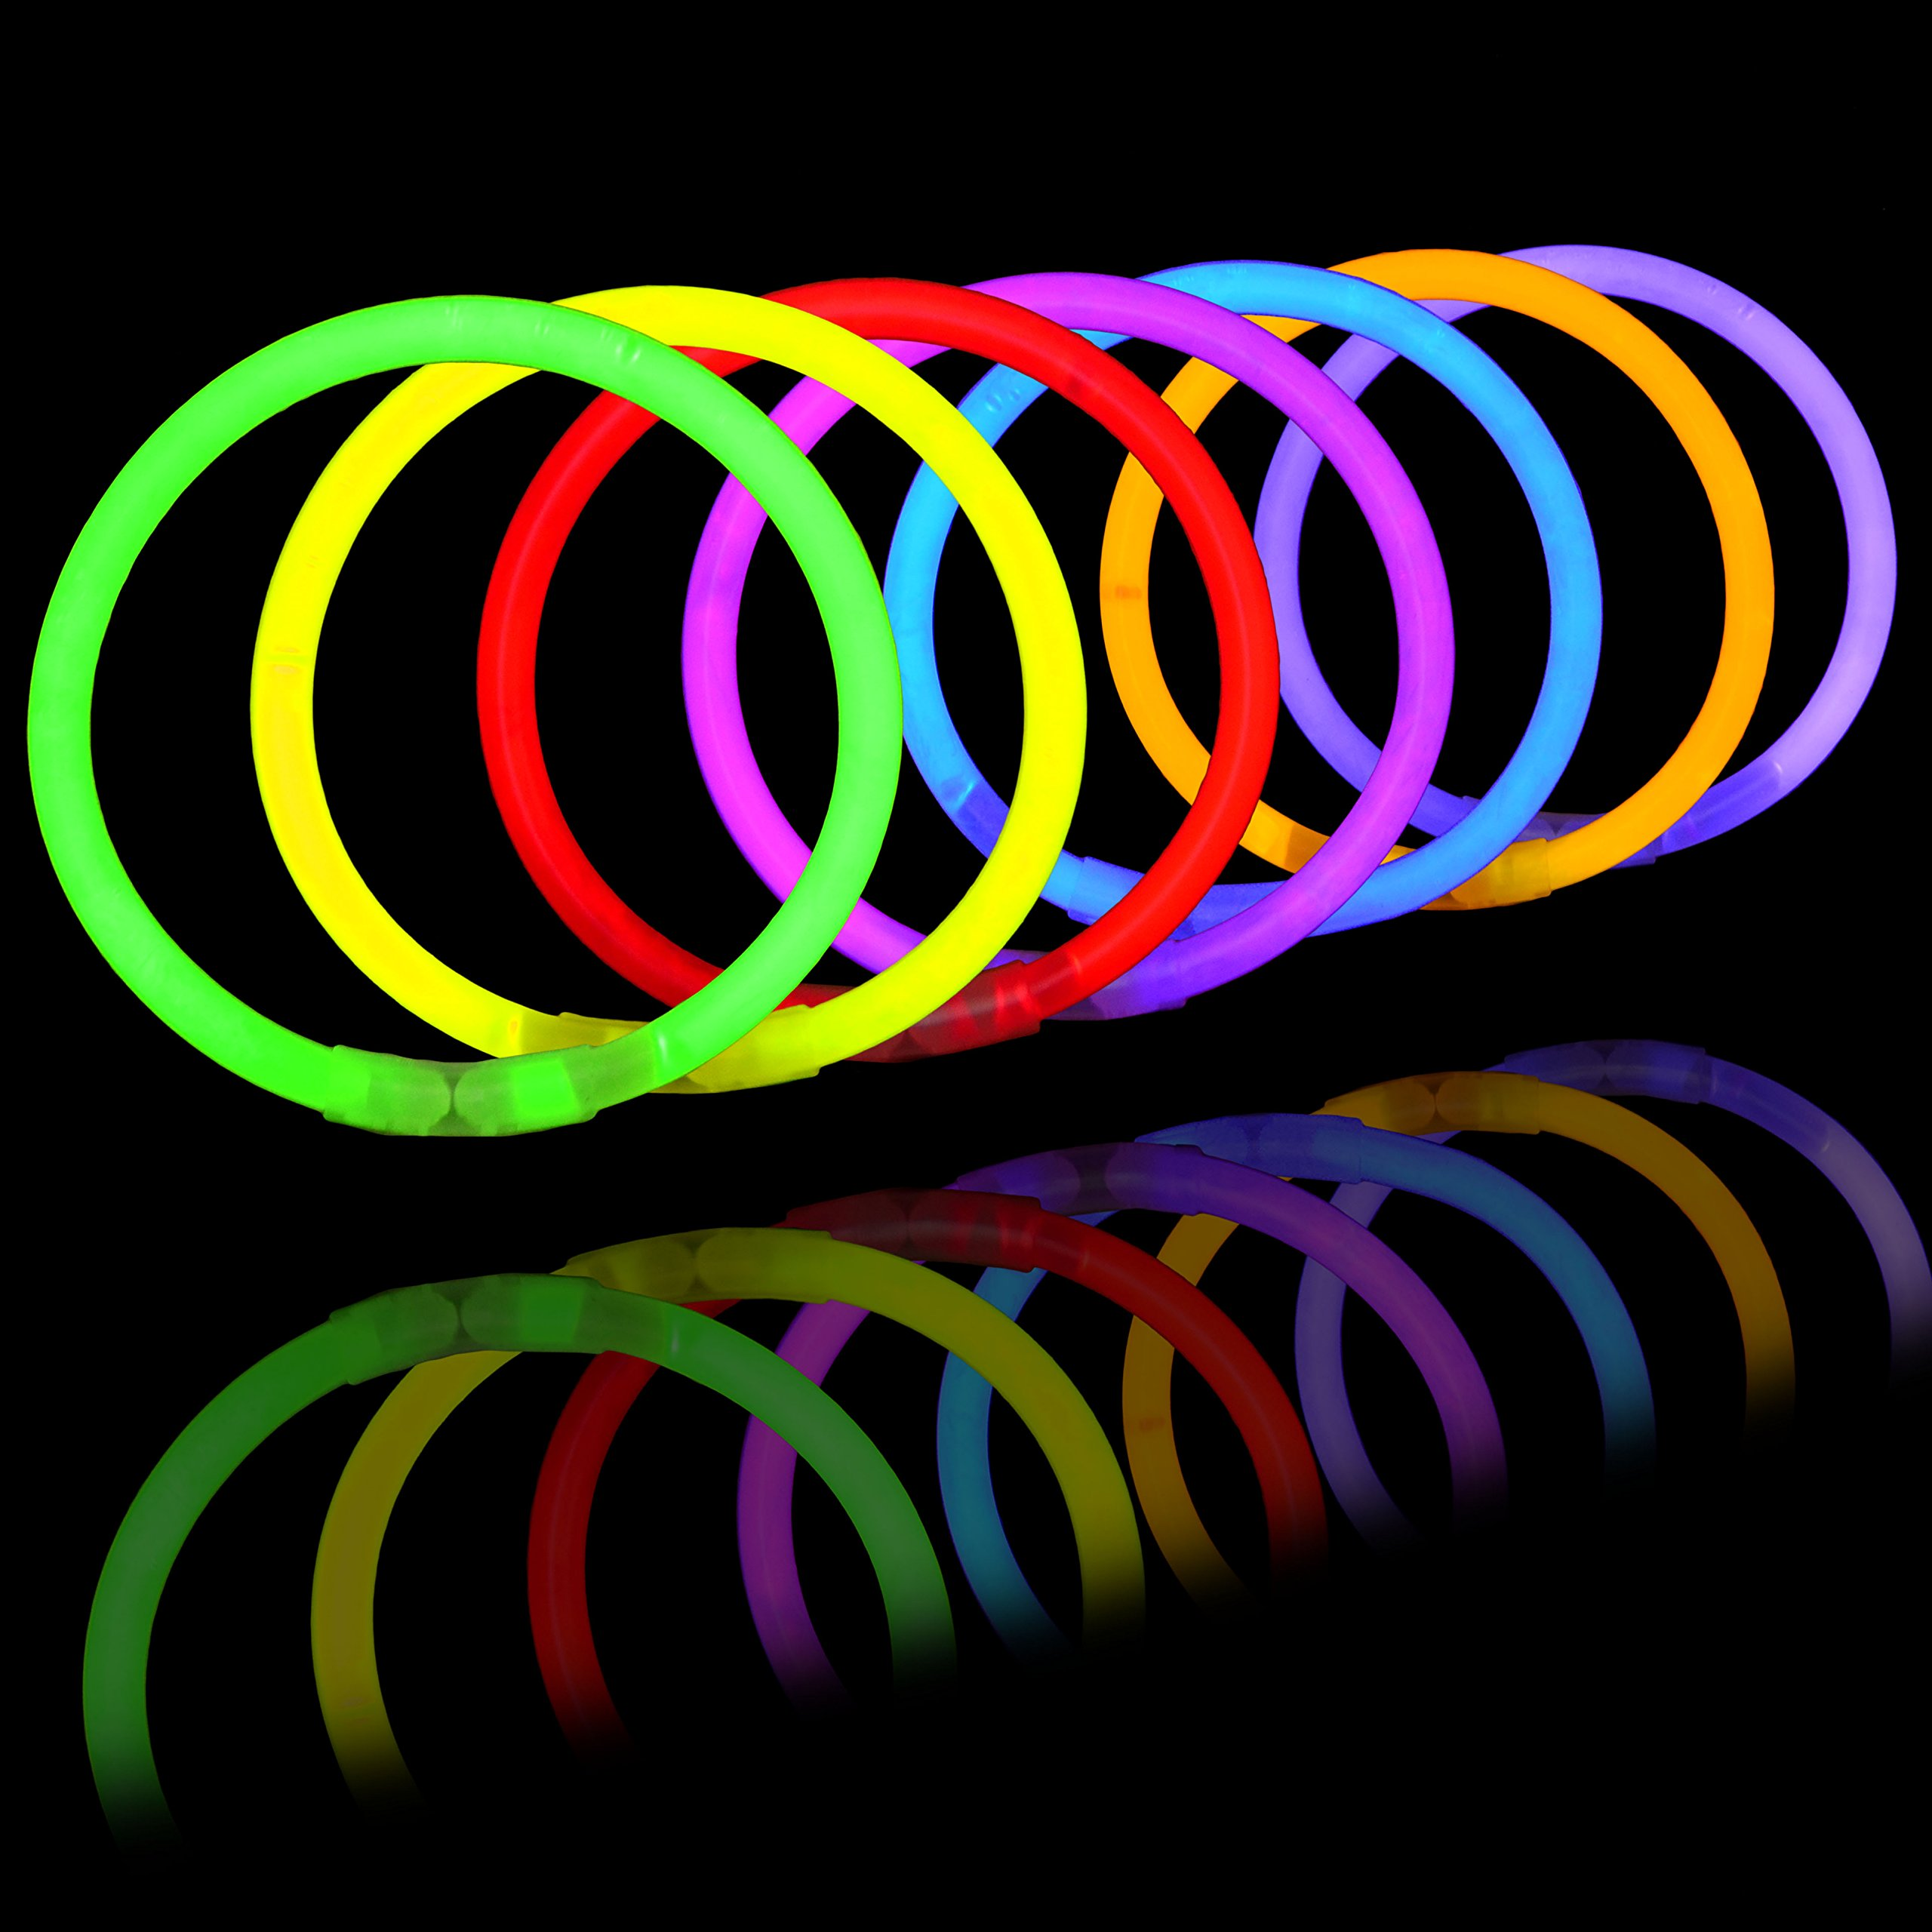 300 Pack Glow Sticks with 100 22'' Necklaces + 200 8'' Bracelets; Connector Included; Glowstick Bundle Party Favors, Glow in the Dark Party Bulk Supplies, Neon Light Up Accessories for Kids and Adults. by JOYIN (Image #7)